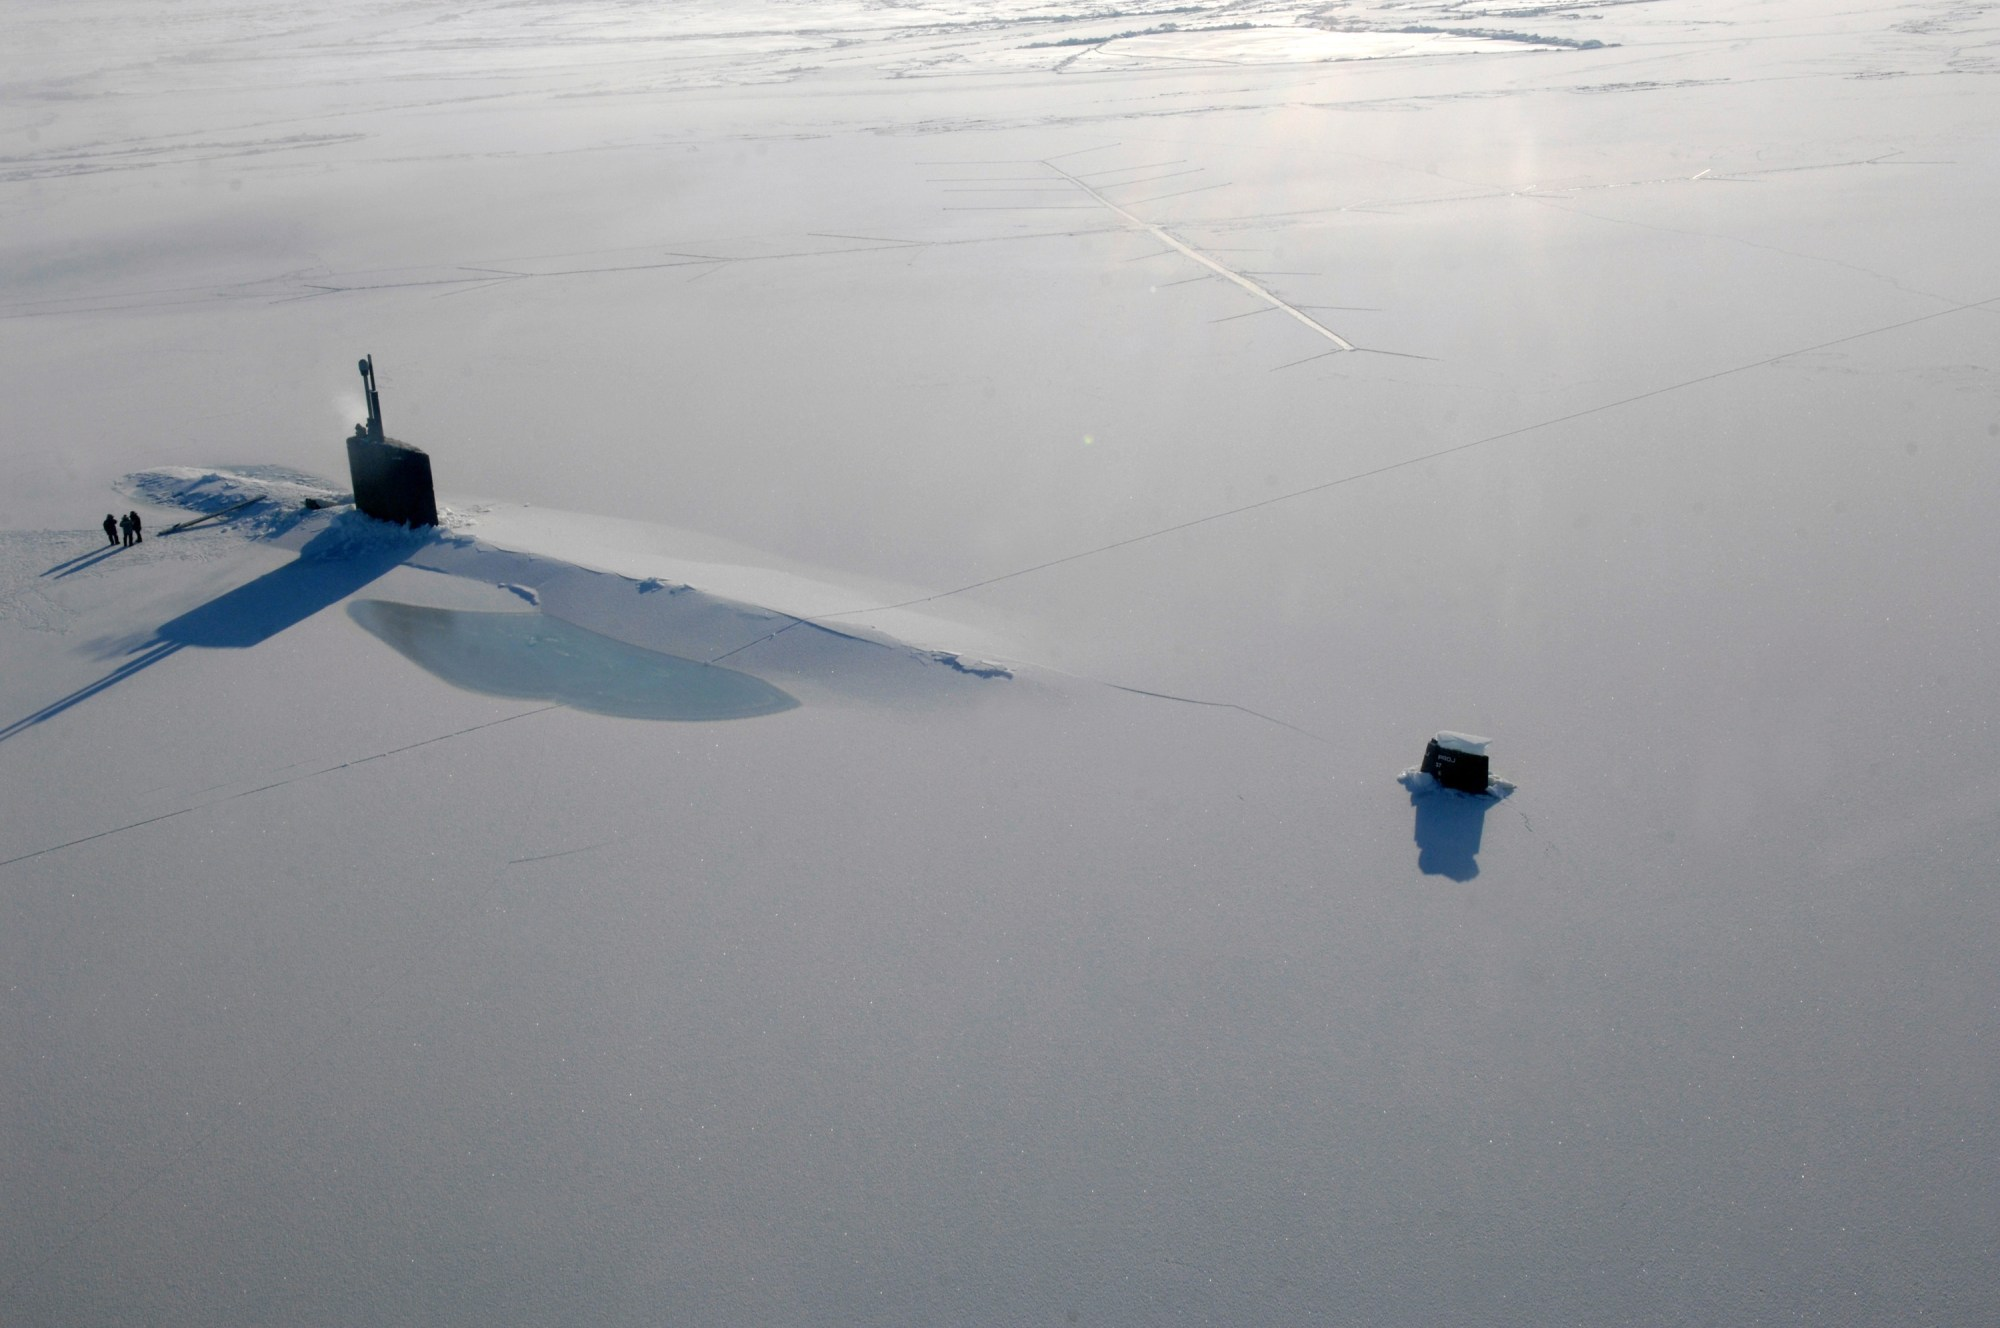 hight resolution of us navy attack submarine uss annapolis rests in the arctic ocean after surfacing through three feet of ice during ice exercise 2009 on 21 march 2009